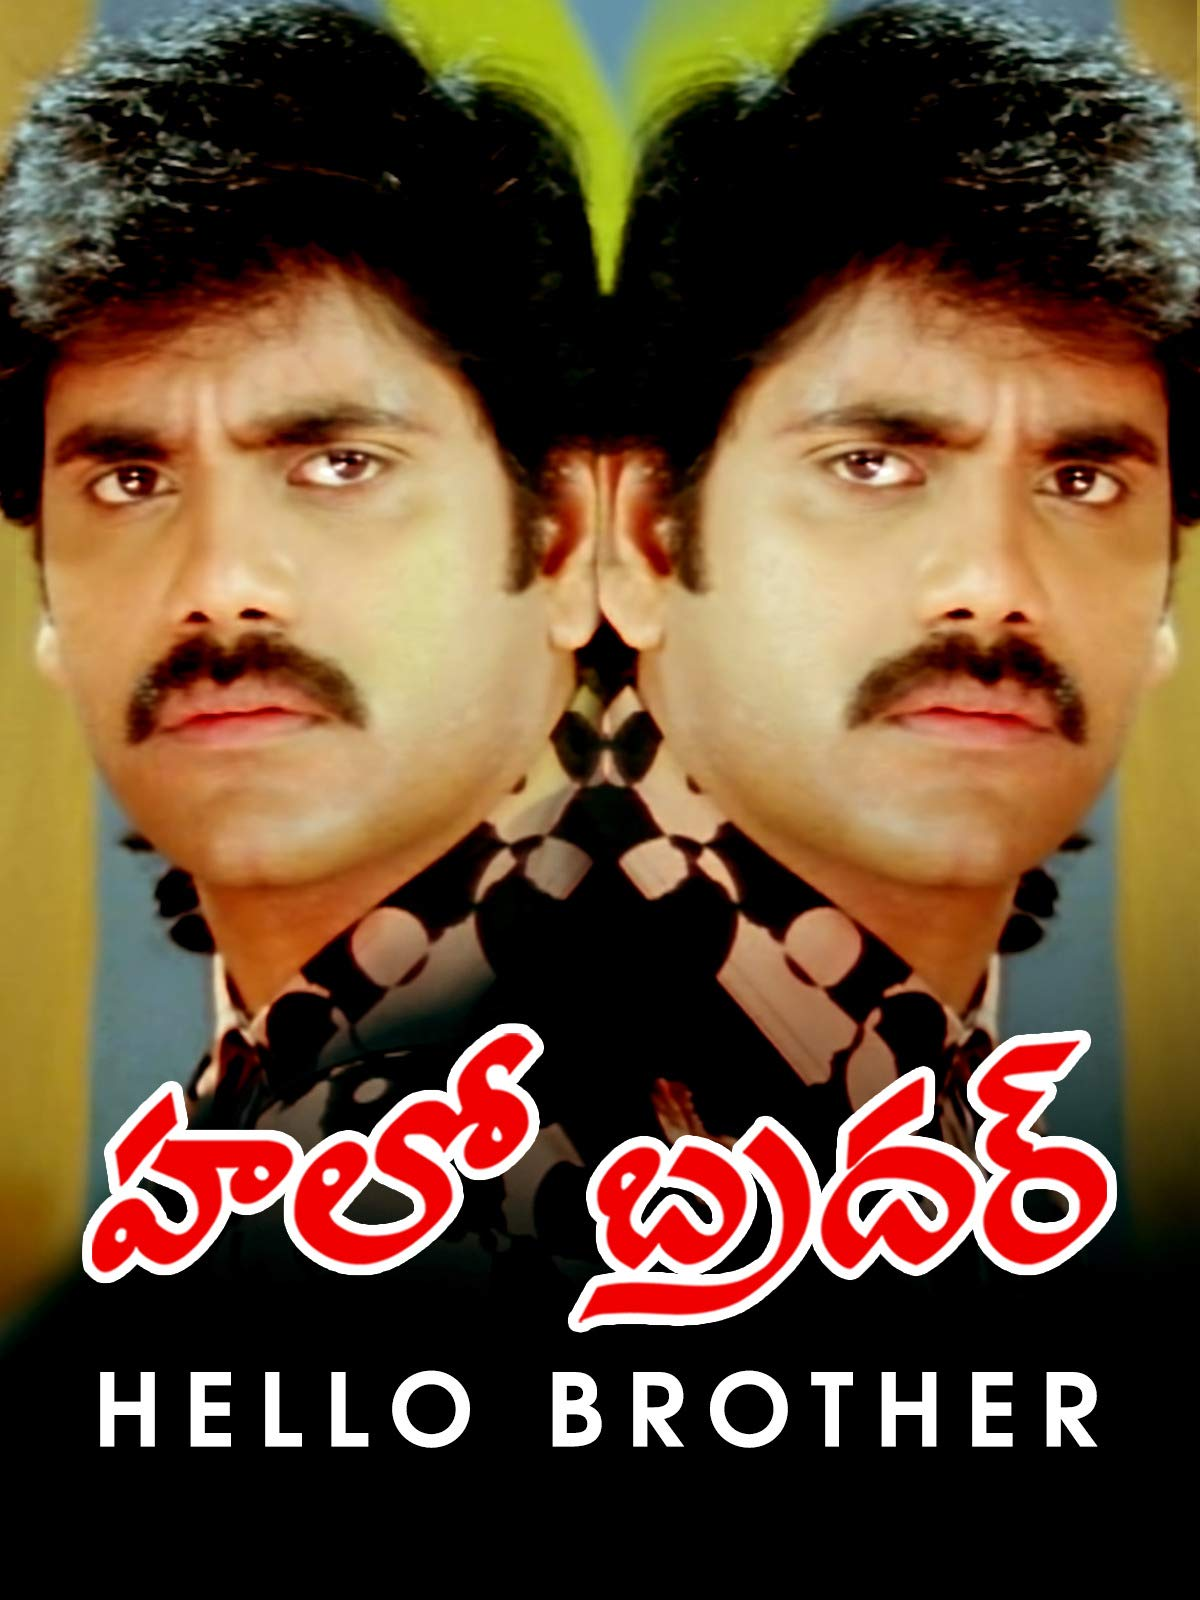 Hello Brother Film In Tamil Free Download Hack Zone Powered By Doodlekit